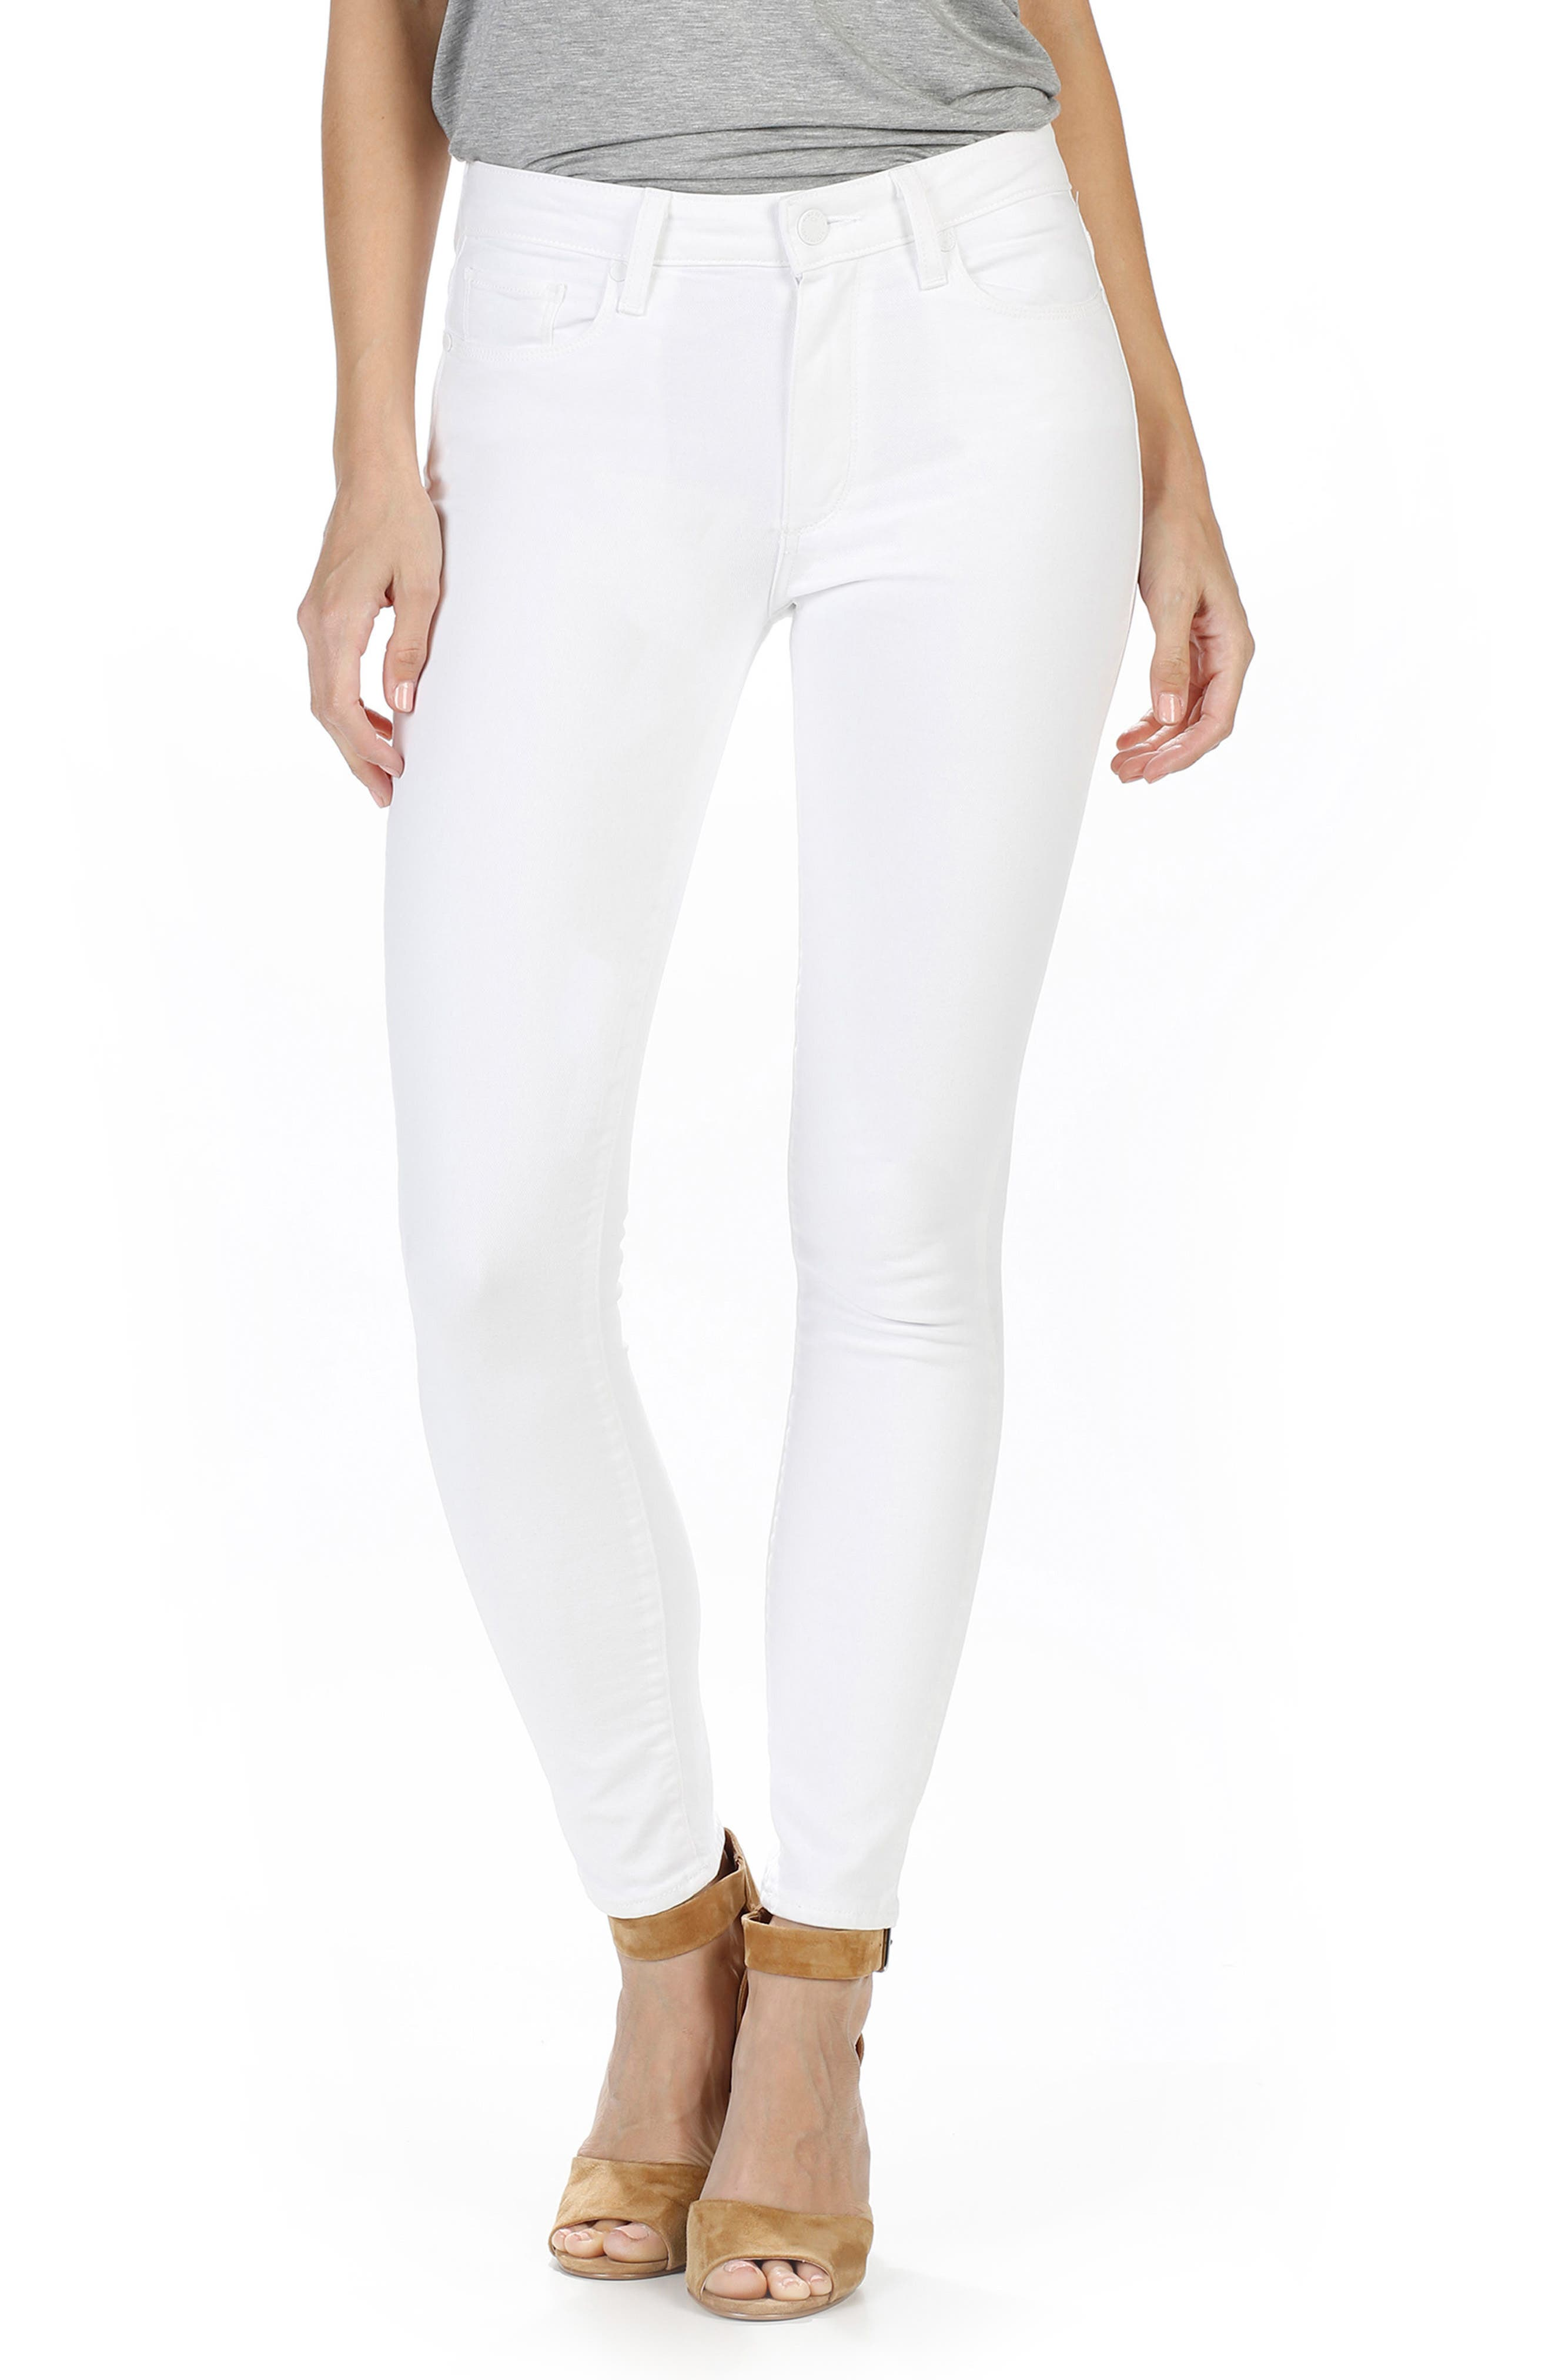 Hoxton High Waist Ankle Skinny Jeans,                             Main thumbnail 1, color,                             101